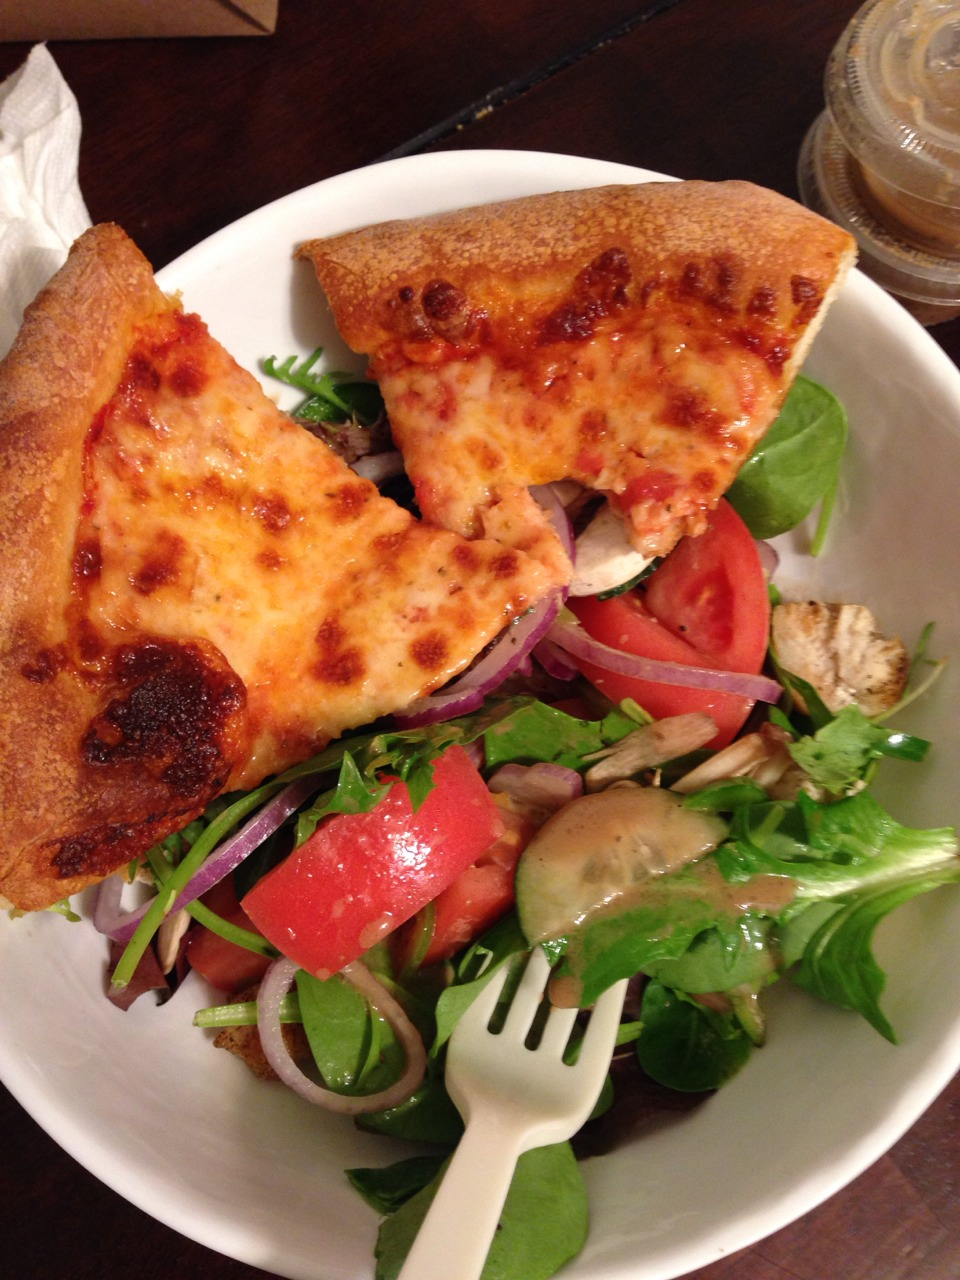 Pizza salad.